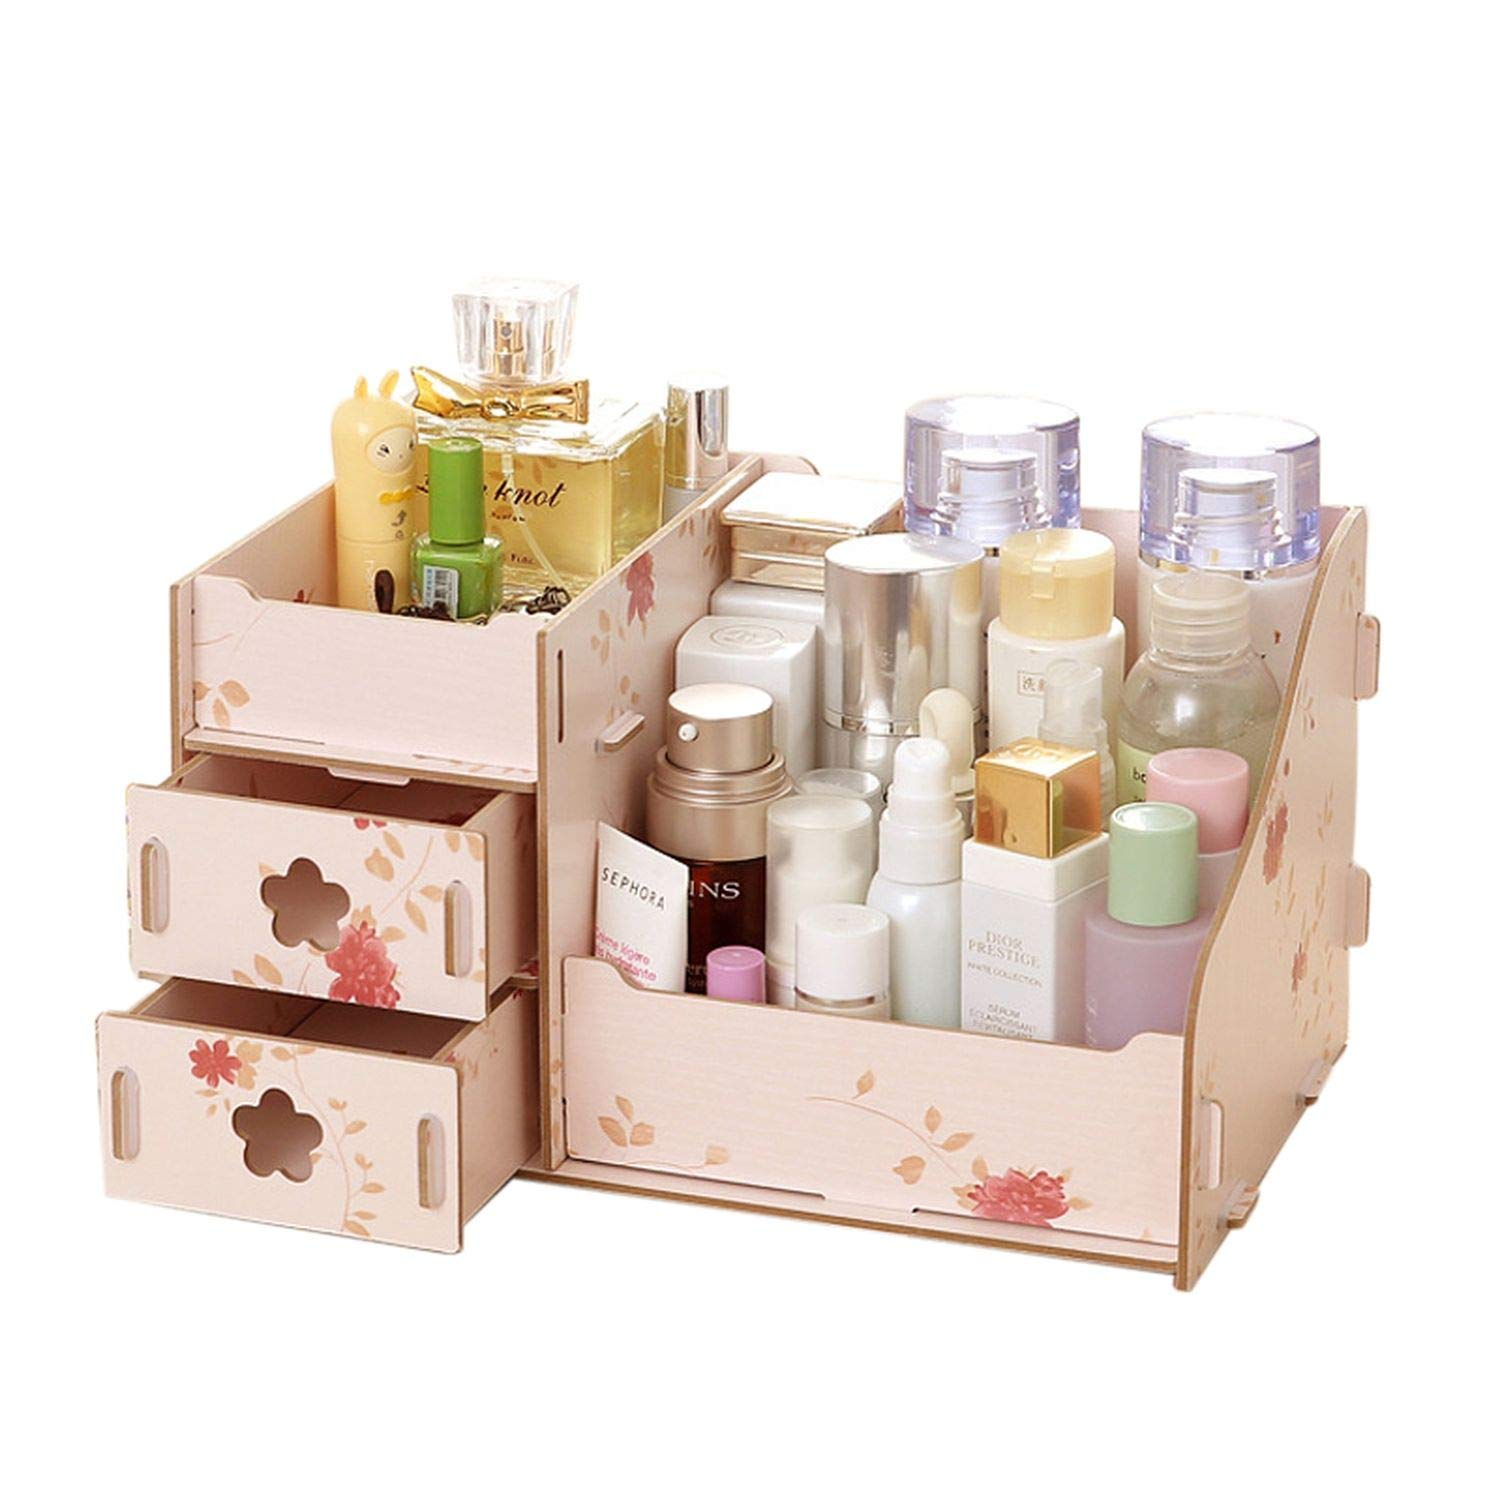 Collocation-Online Wooden Cosmetic Storage Boxes Small Drawer Jewelry Box Desktop Sundries Handmade DIY Makeup,Flower A by Collocation-Online (Image #3)